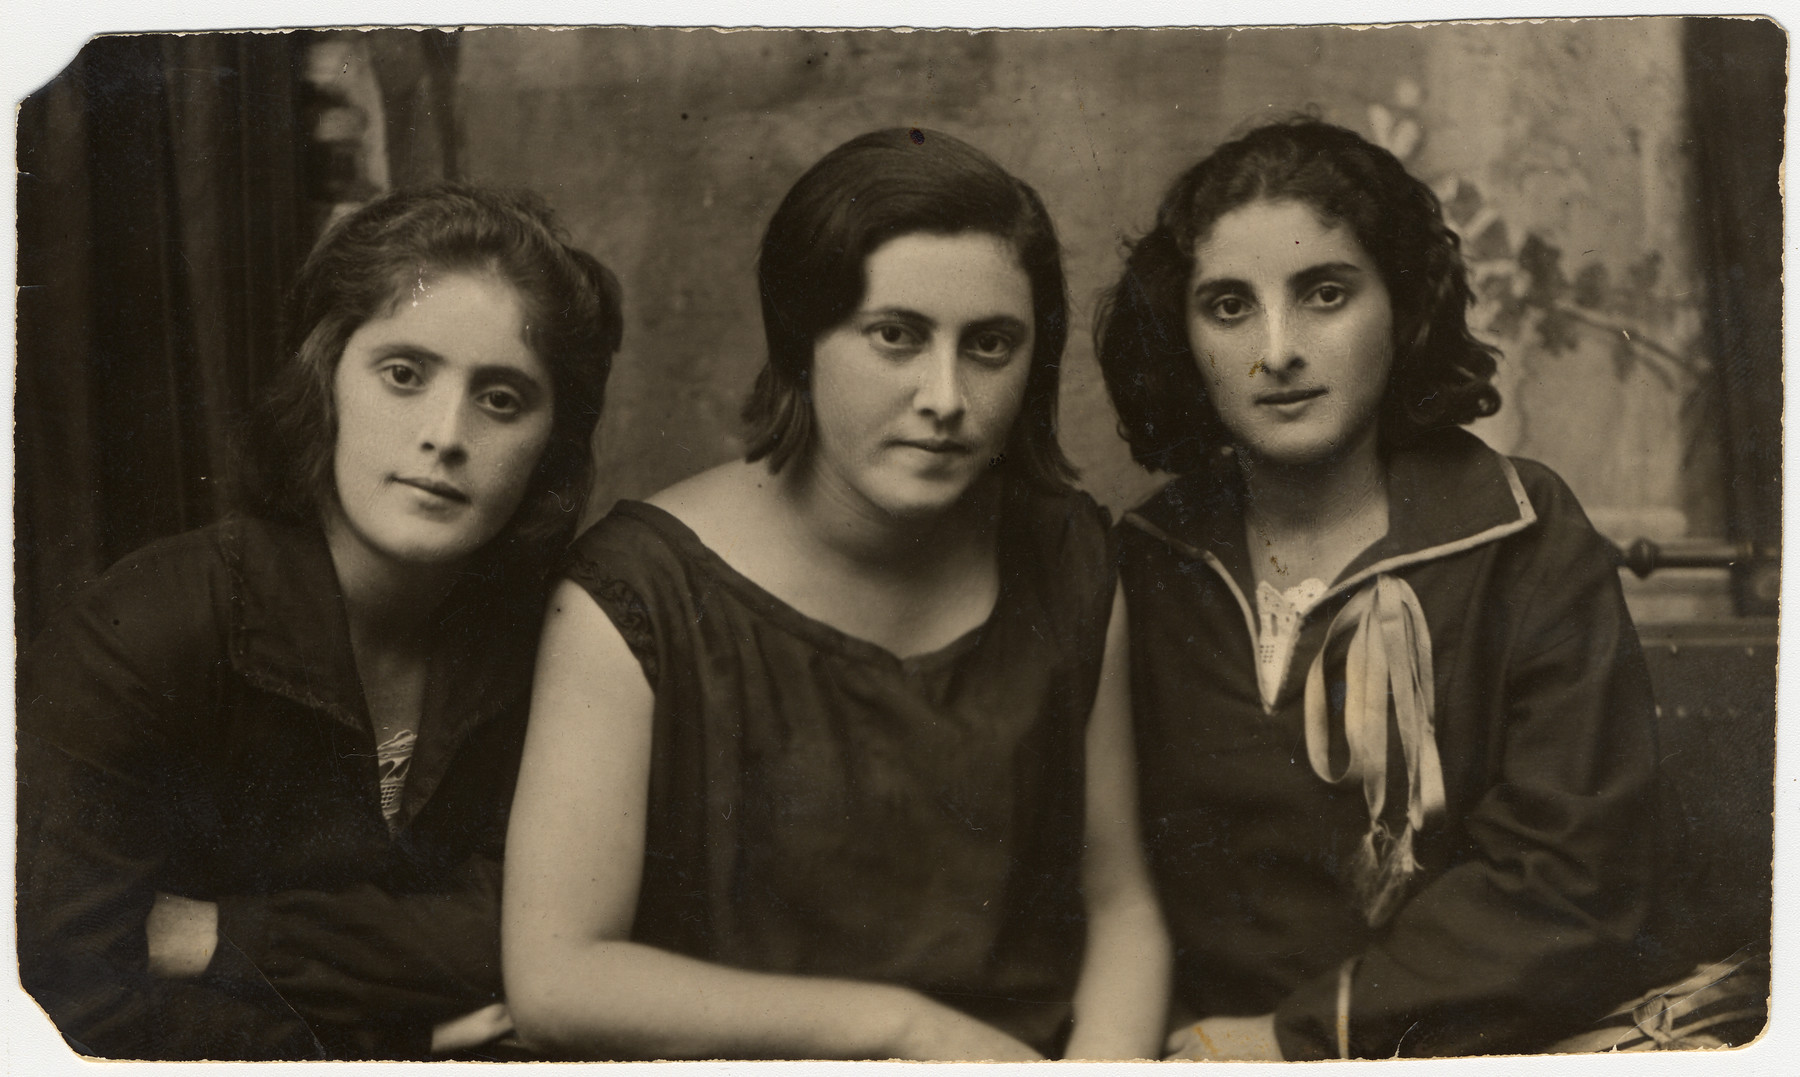 Studio portrait of three sisters Sonja (Sheyna), Liza and Yeva (Chaya) Cygelman.  Only Yeva and Liza survived the war